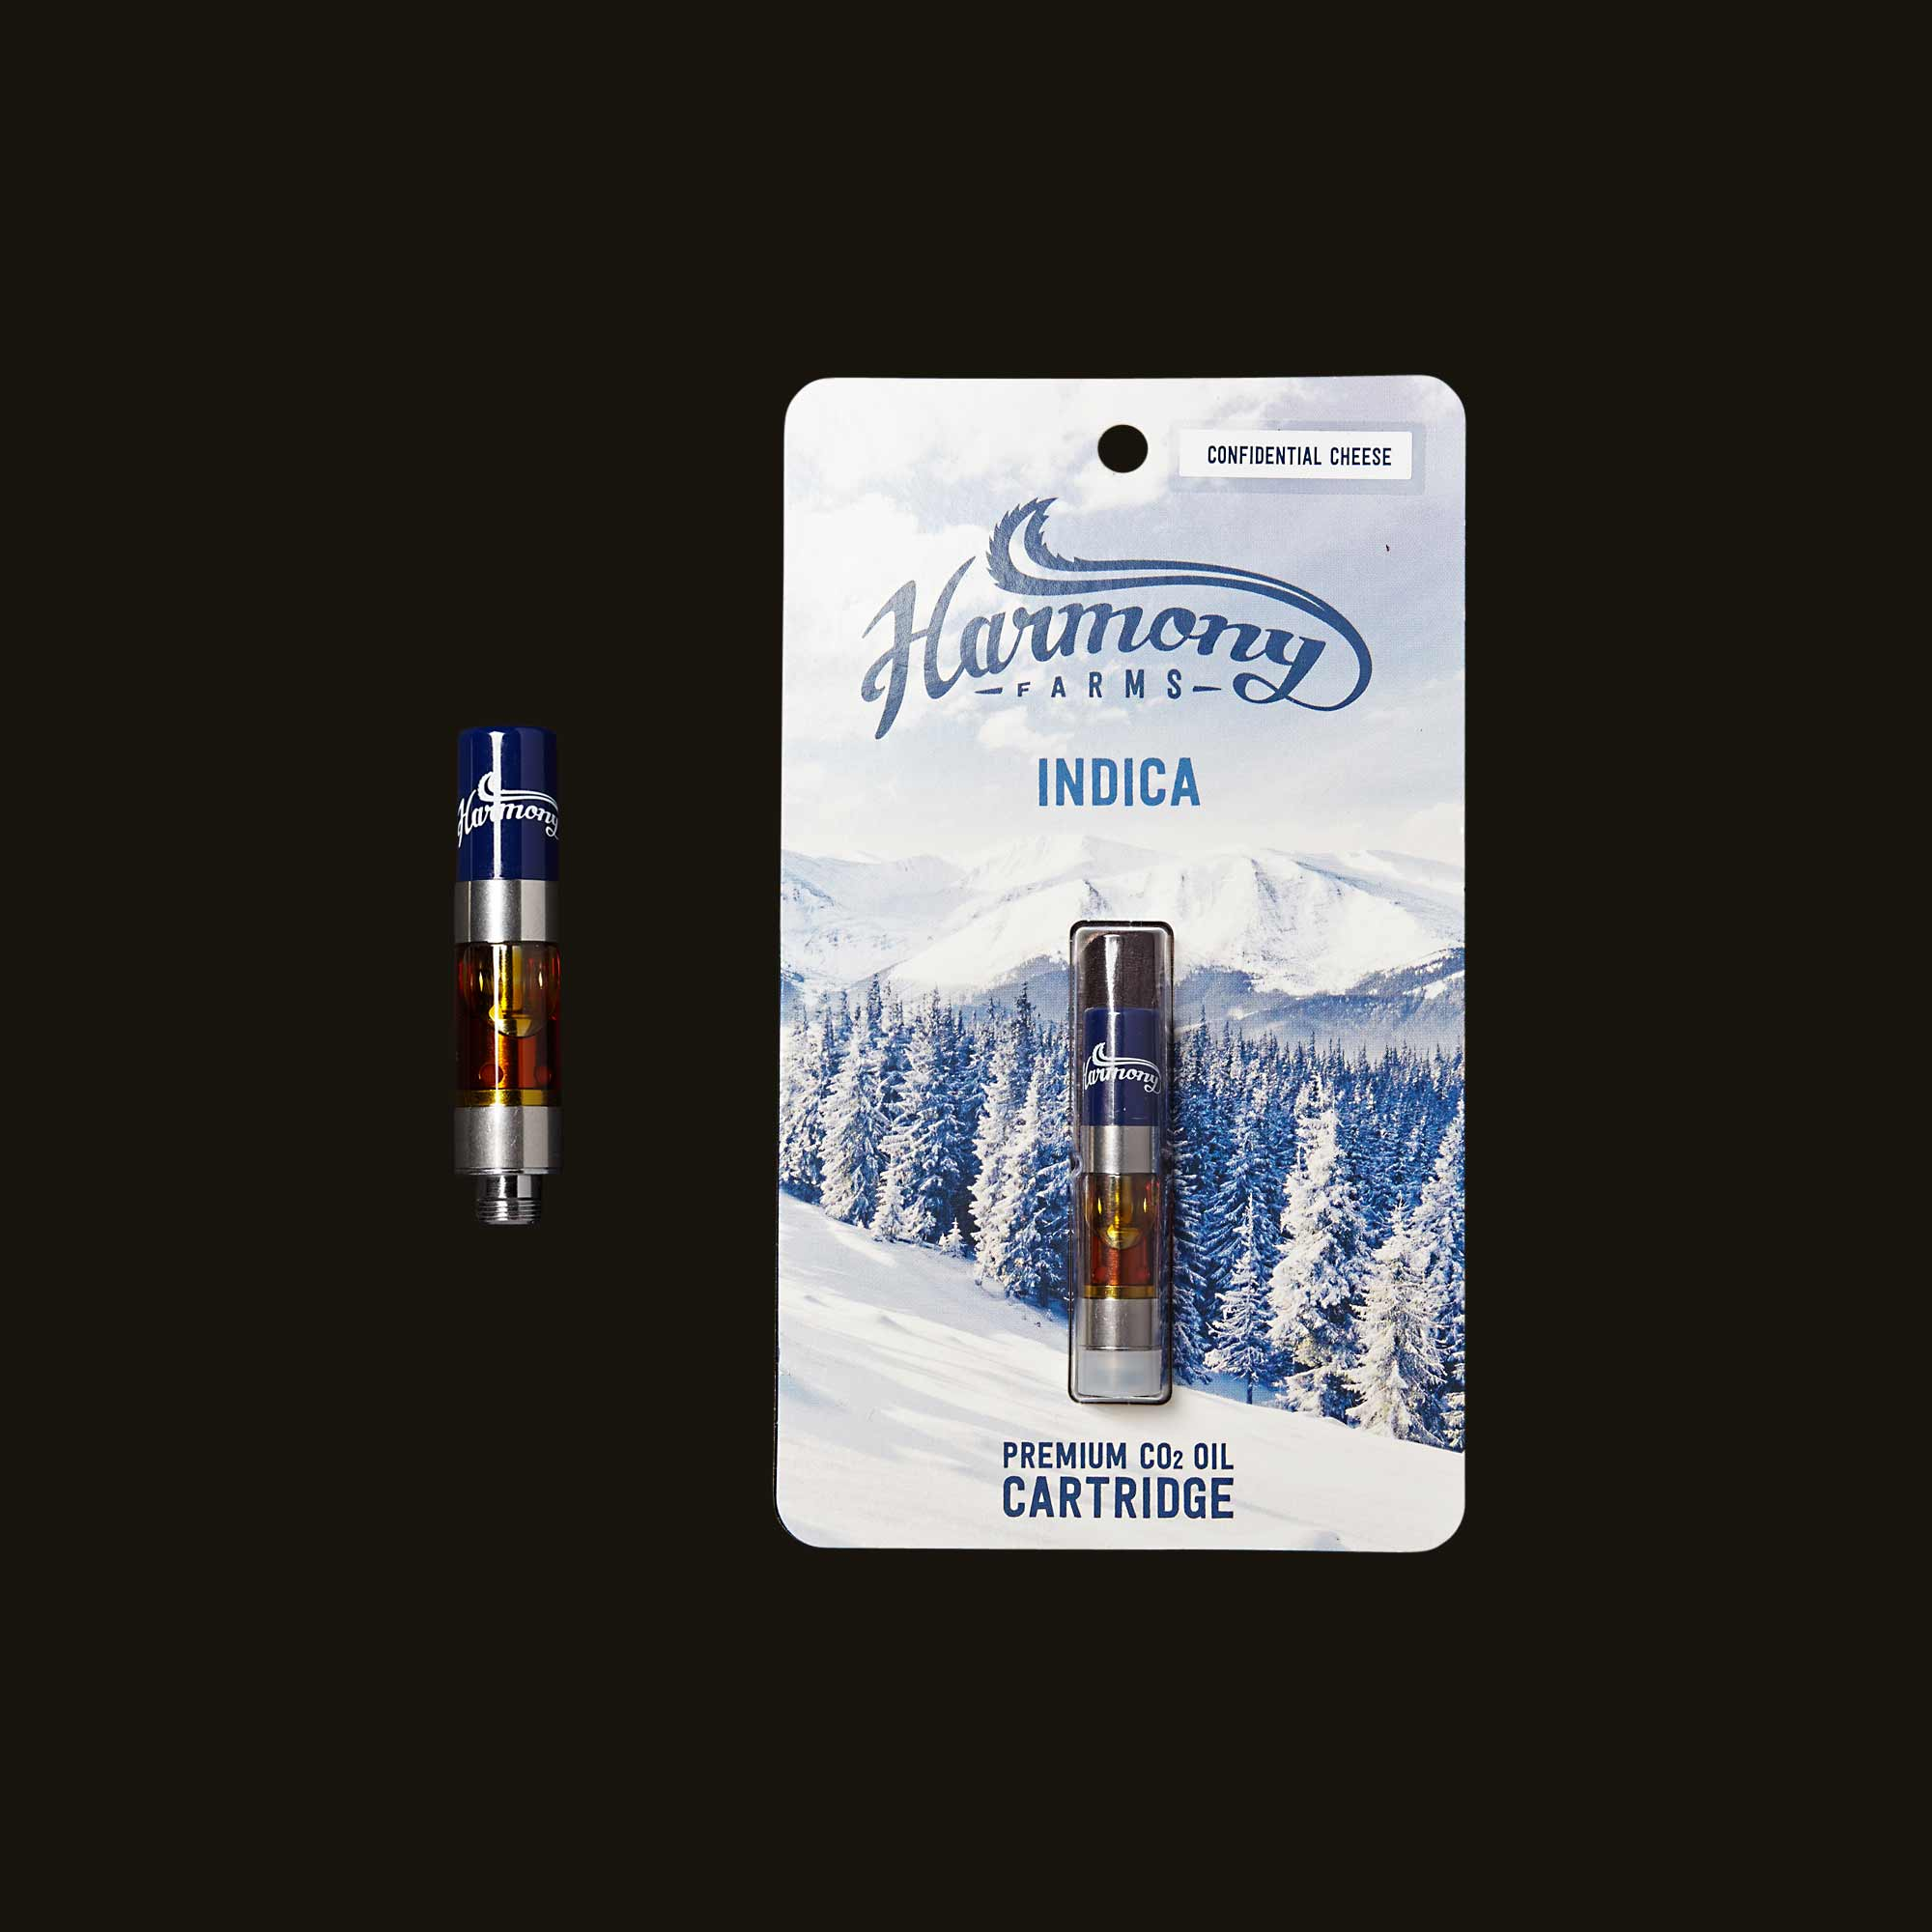 Harmony Extracts Confidential Cheese Cartridge